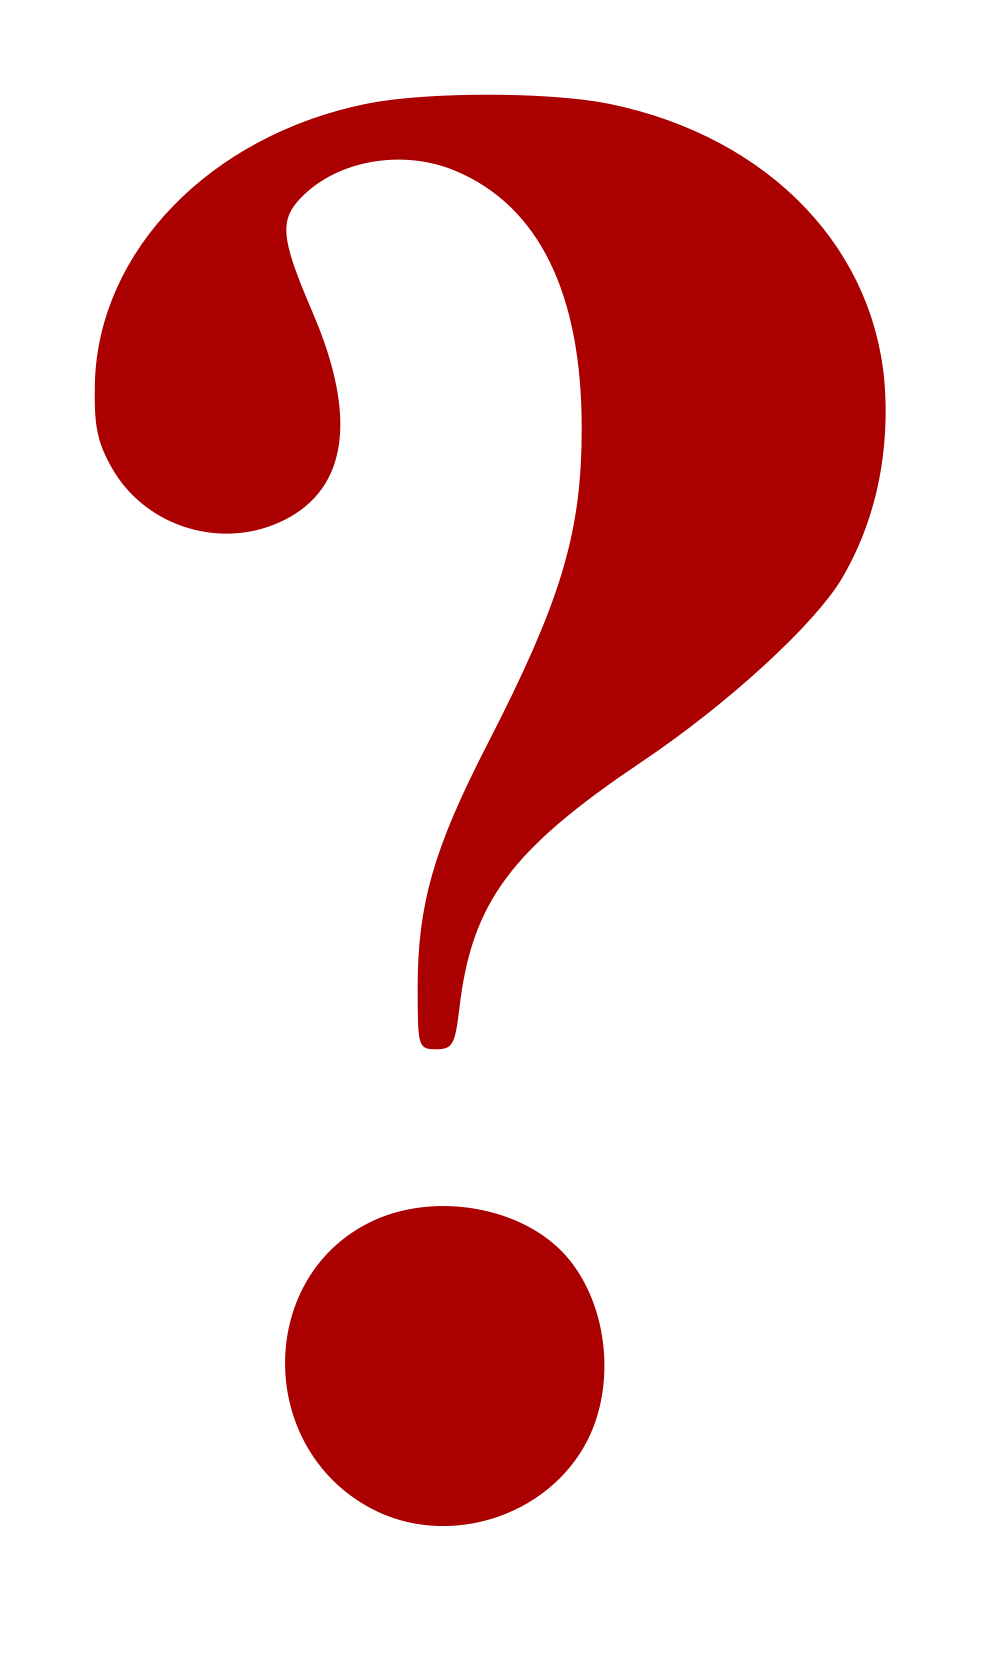 Red question mark clipart